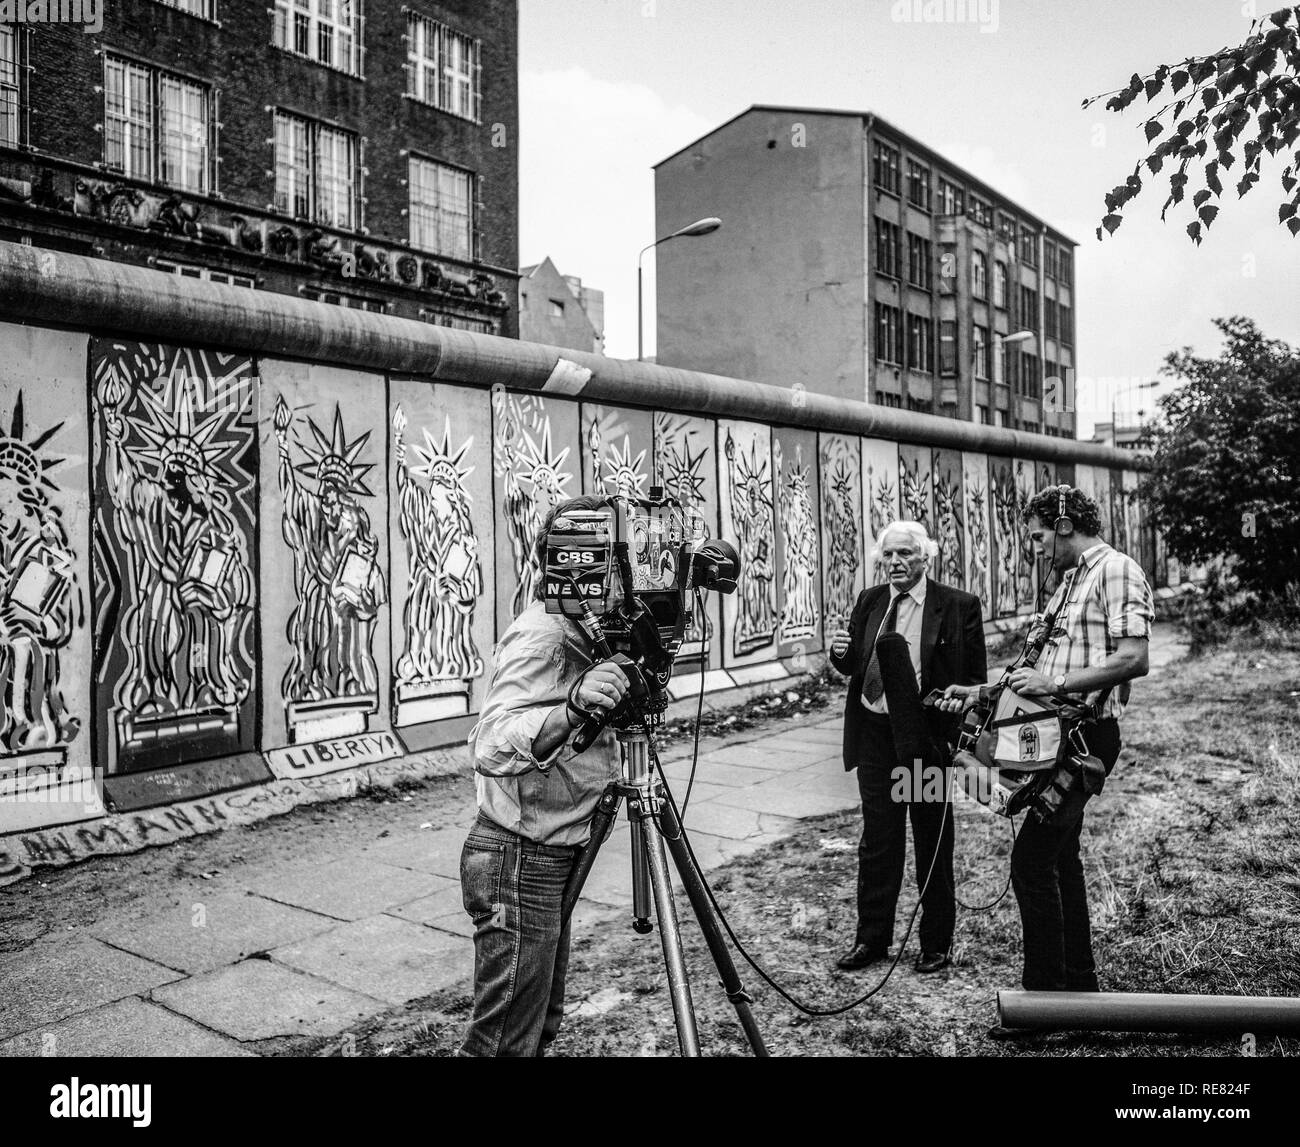 August 1986, CBS TV crew conducting an interview in front of Berlin Wall decorated with Statue of Liberty frescos, West Berlin side, Germany, Europe, - Stock Image